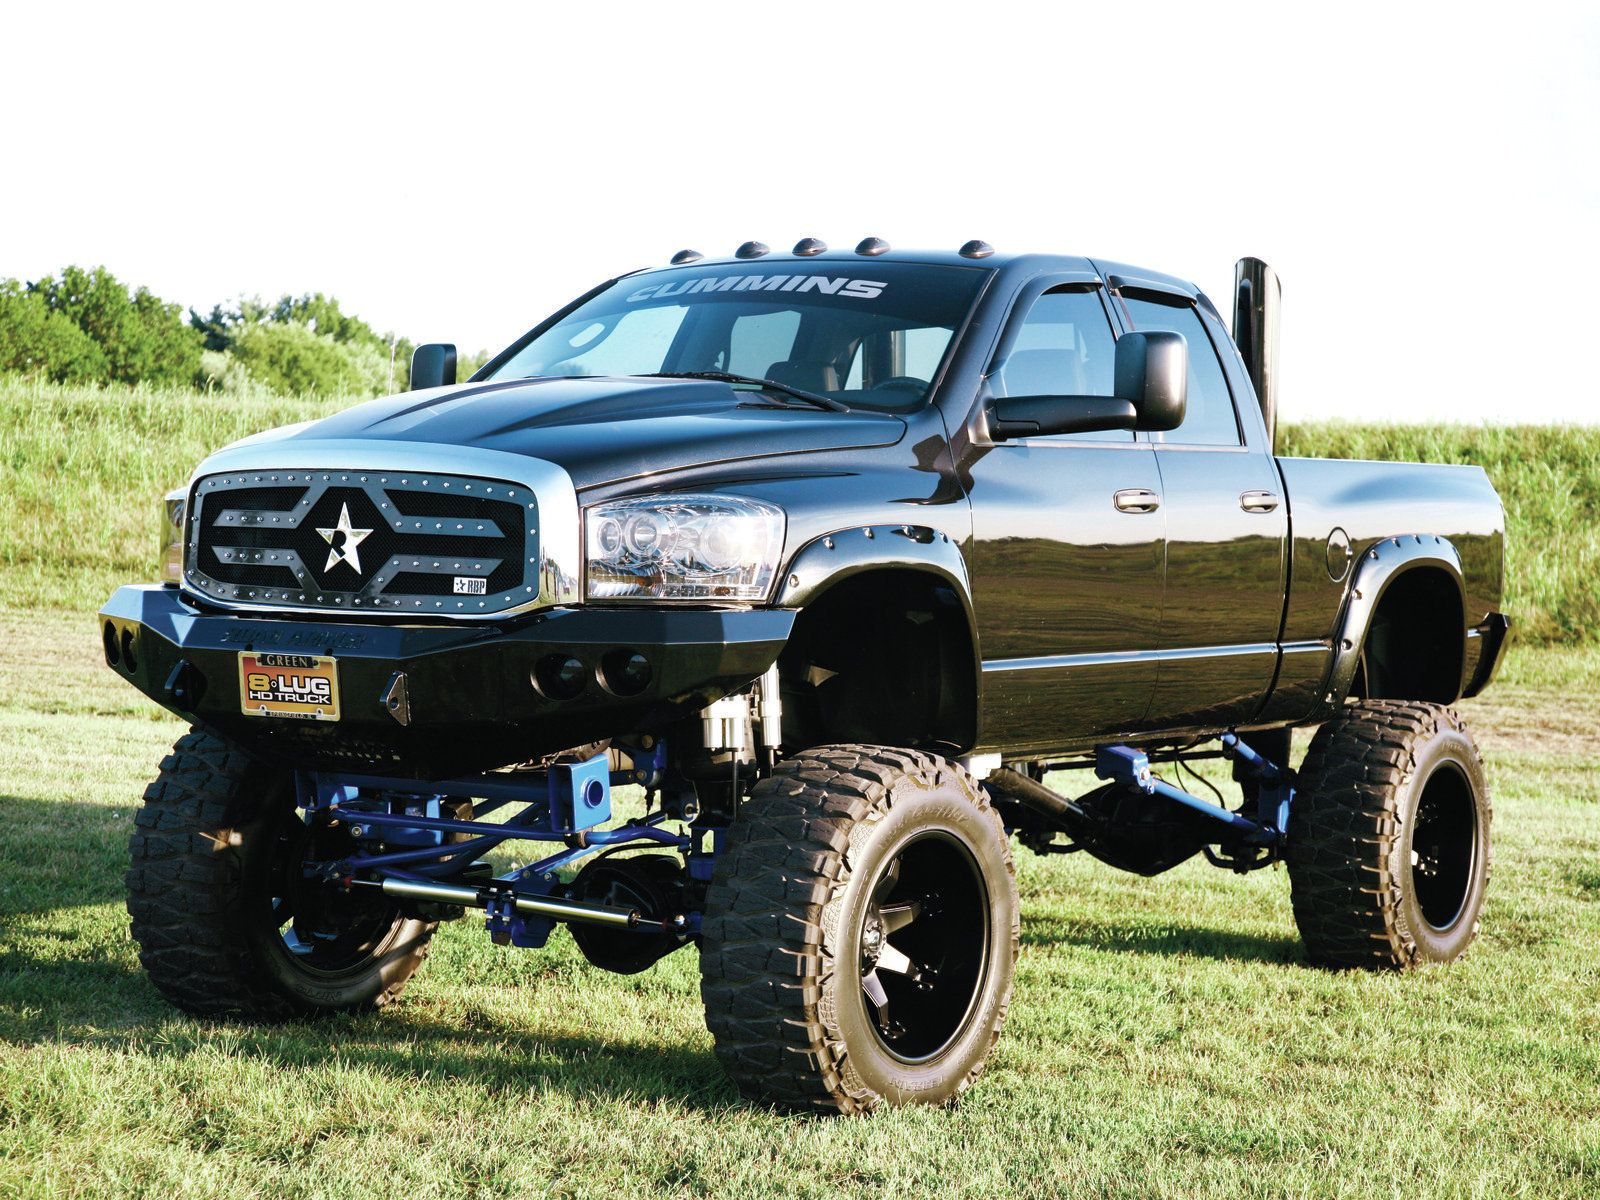 1000 images about dodge ram on pinterest dodge ram 2500 dodge ram dually and pickup trucks - Dodge Truck 2015 Lifted